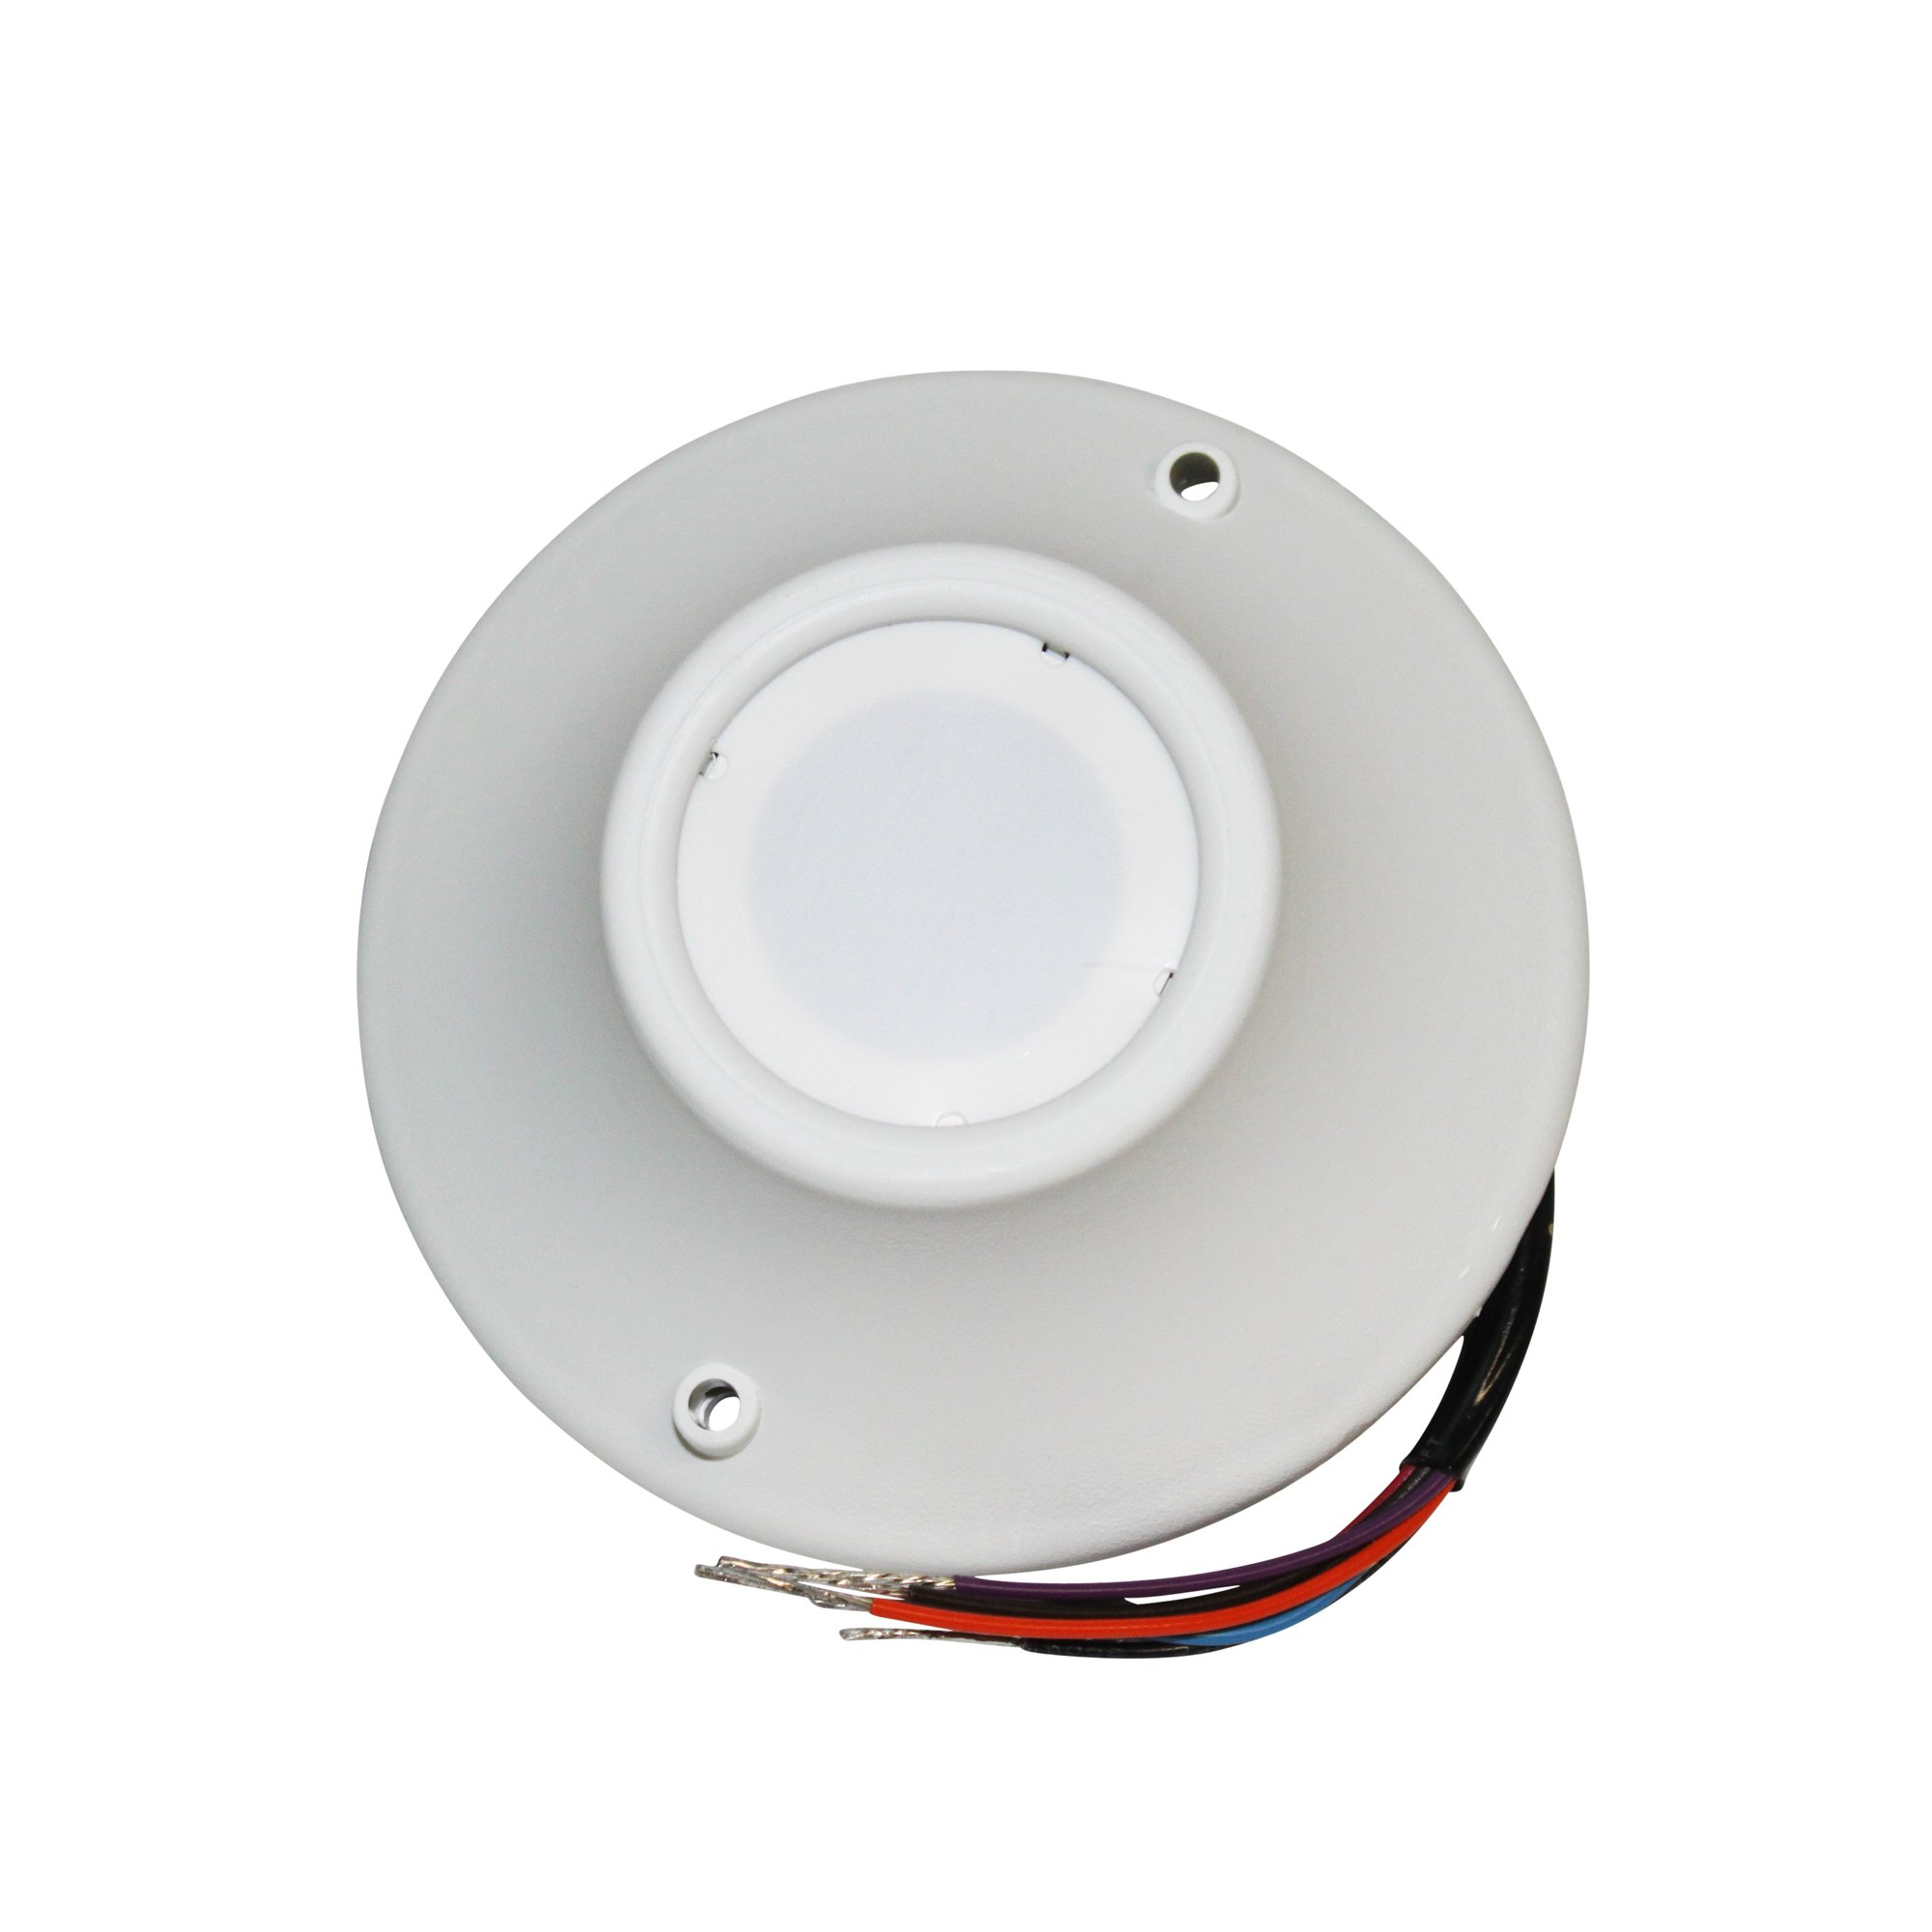 Bryant Hubbell PCCM Ceiling Mount Photocell Occupancy Sensor Daylight Control Motion Switch; White